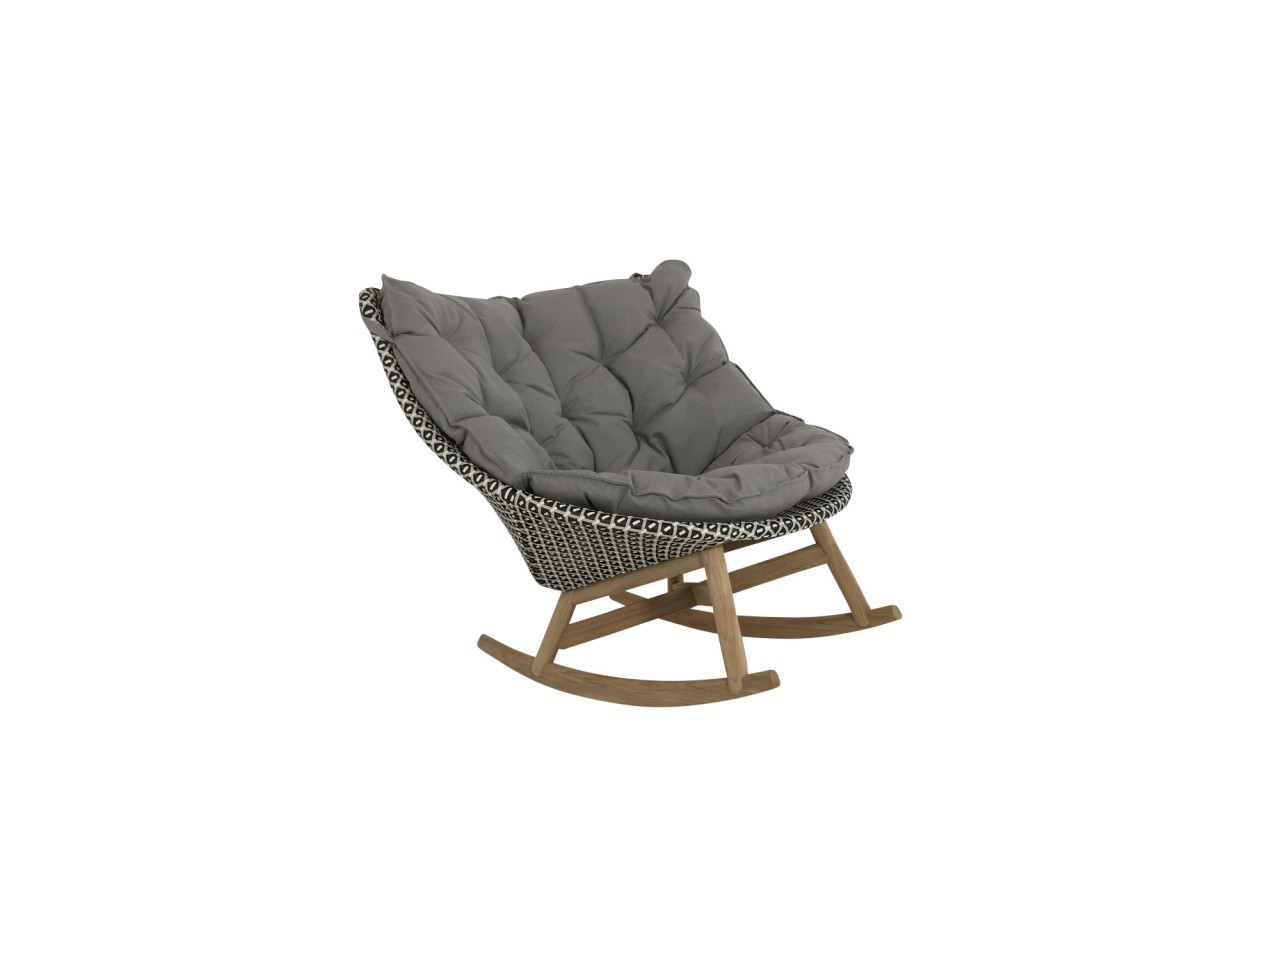 Dedon Mbrace Dedon Mbrace Rocking Chair Schaukel Sessel In Der Farbe